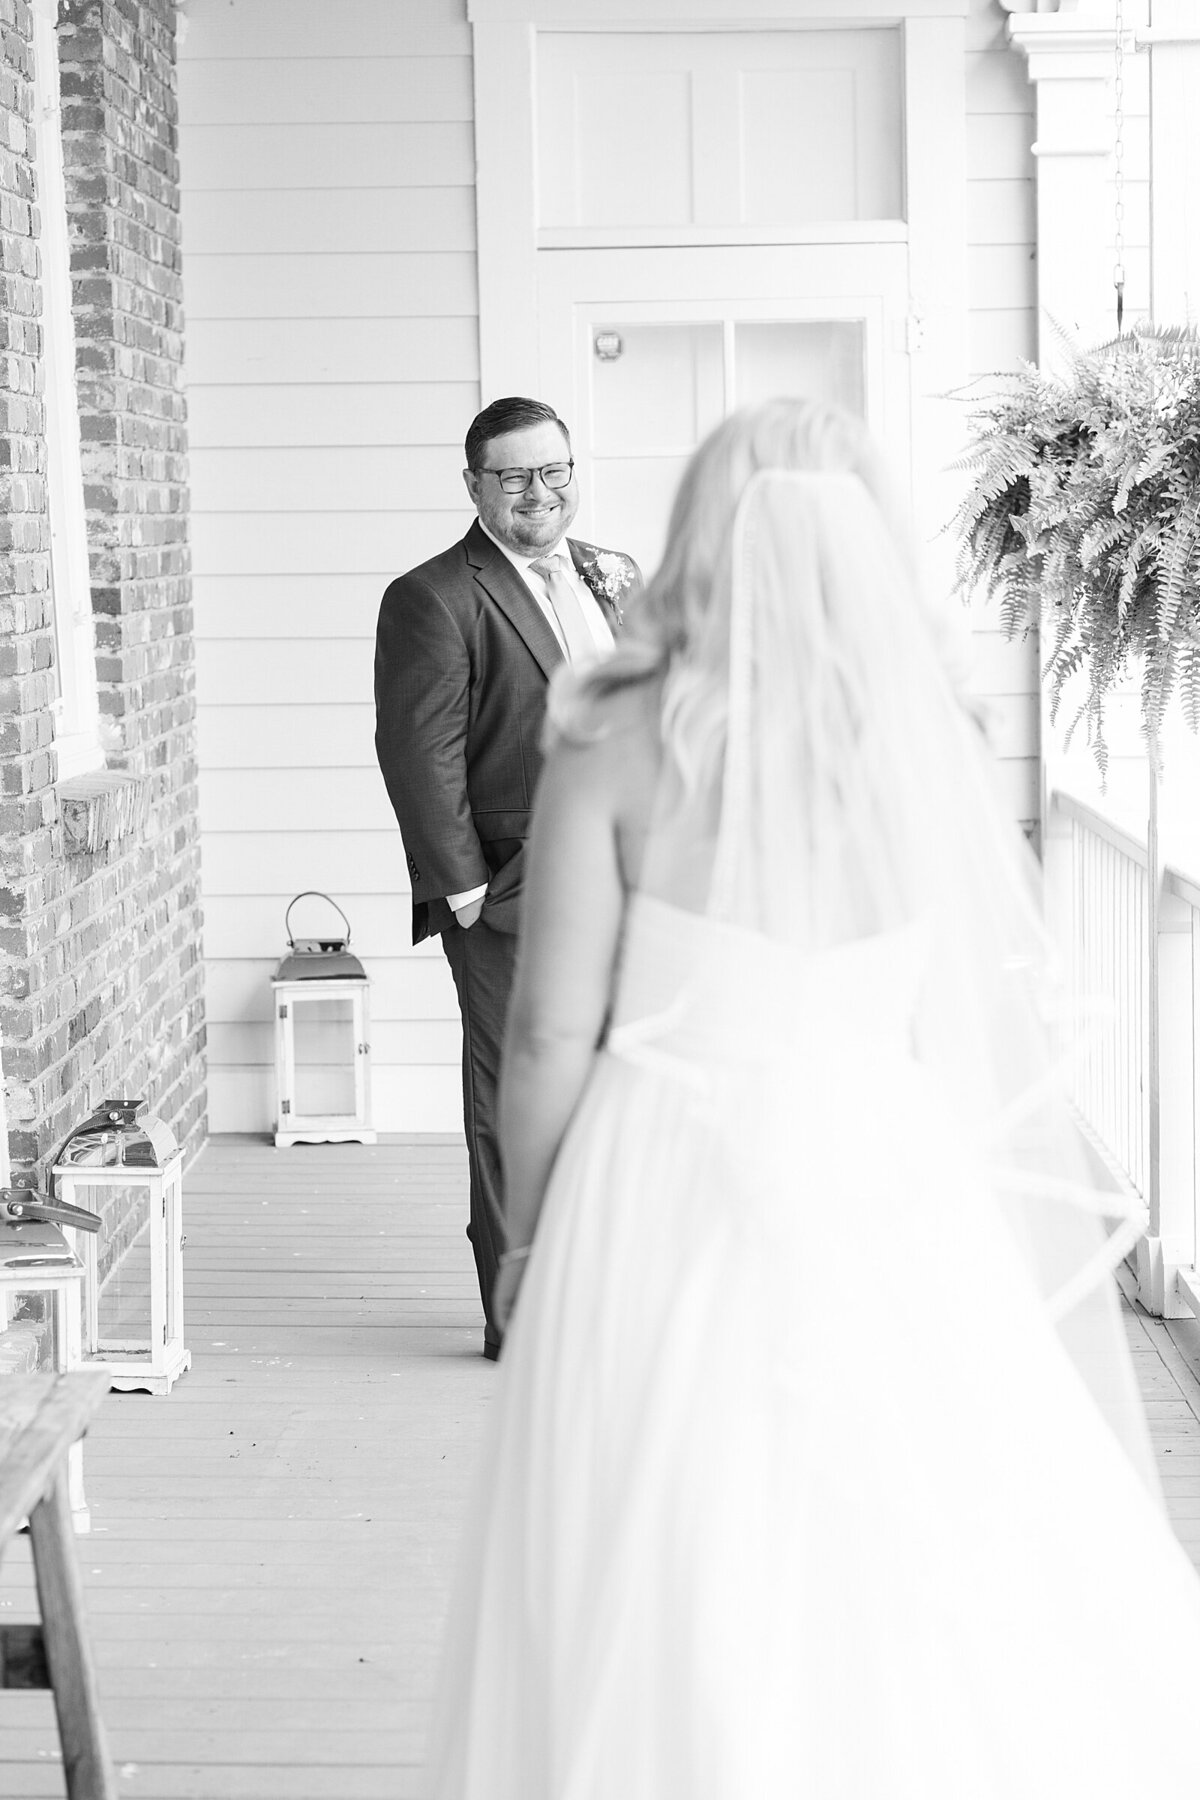 Kara Webster Photography | Mac & Maggie | Bradshaw-Duncan House Louisville, KY Wedding Photographer_0025